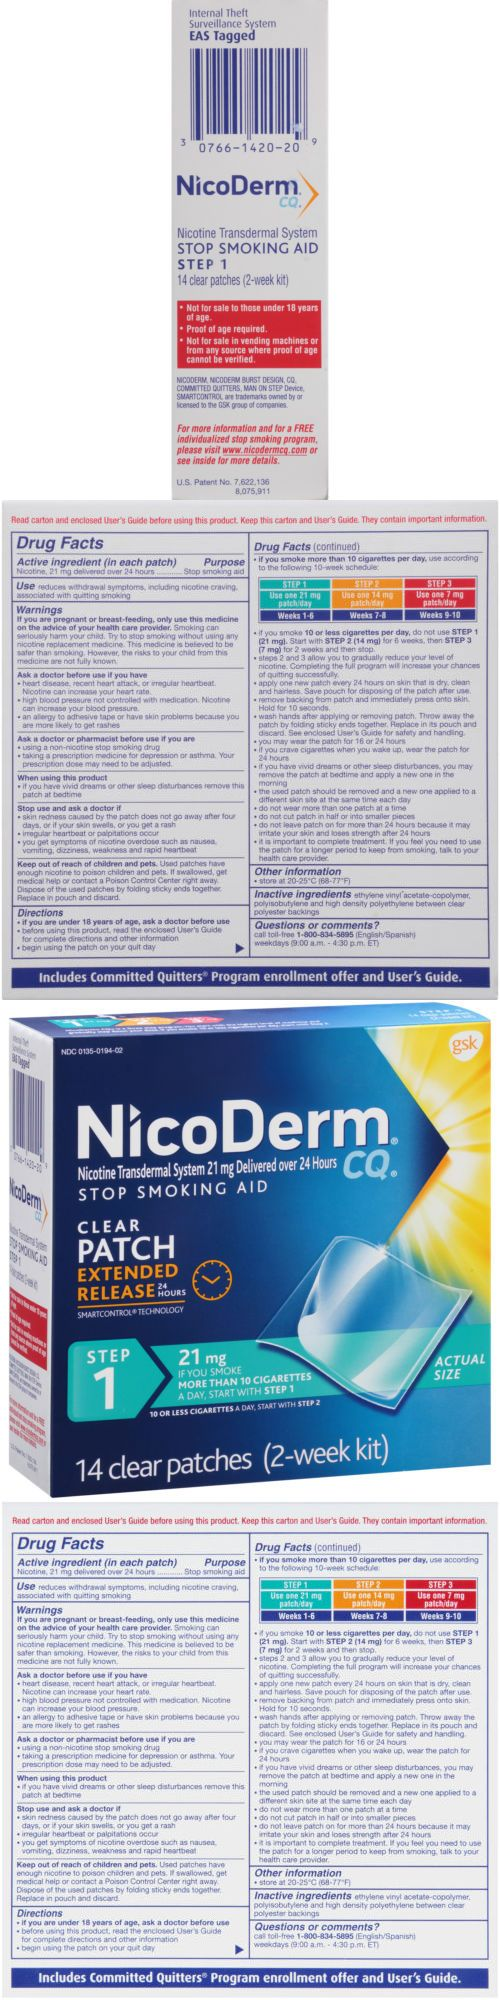 Patches: Nicoderm Cq Step 1 Stop Smoking Aid Nicotine Patch, 21Mg, 14 Clear Patches BUY IT NOW ONLY: $58.47